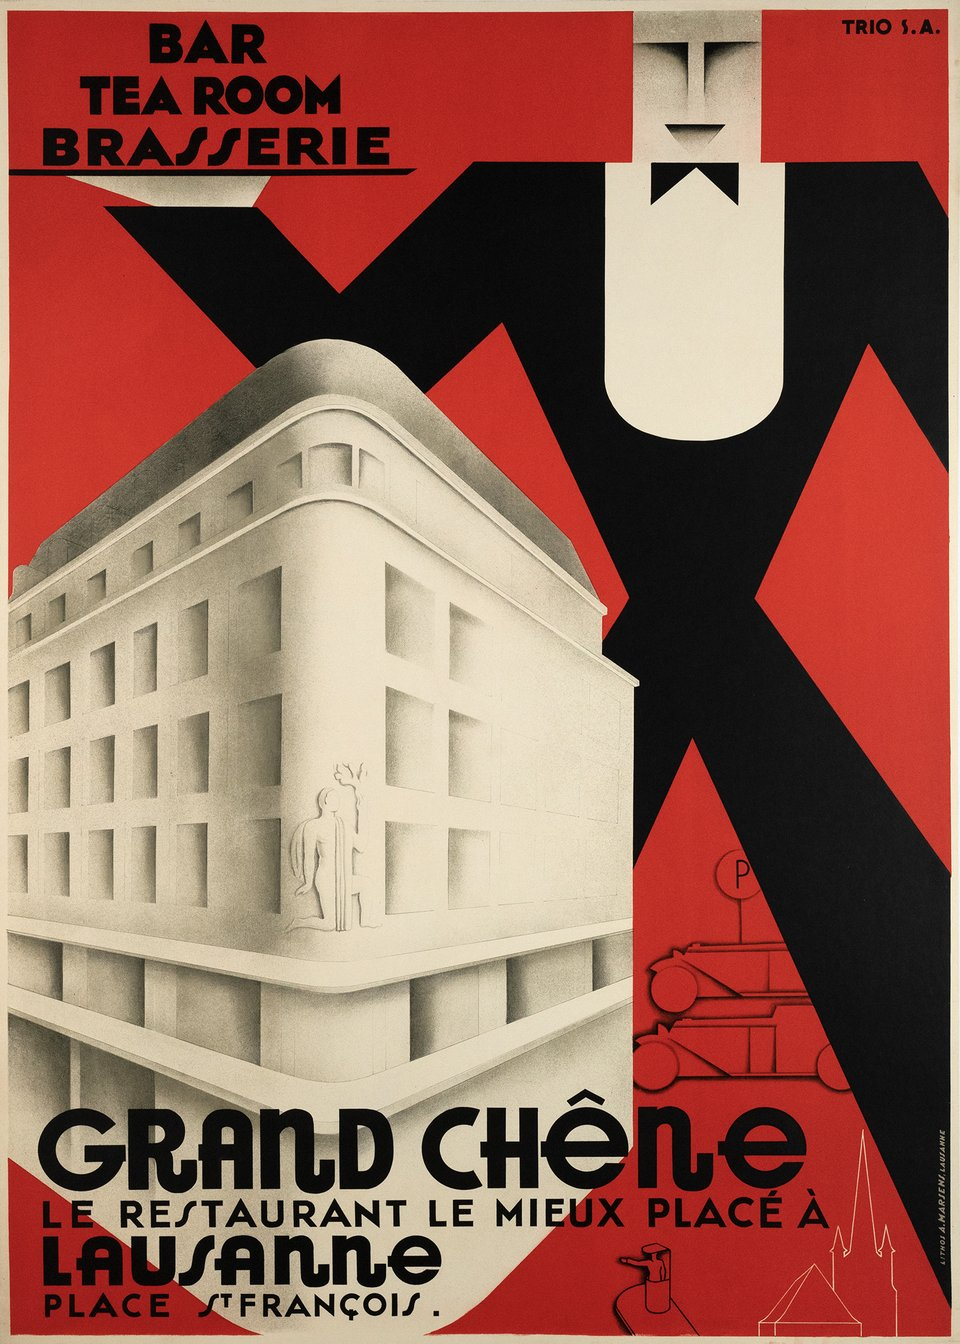 """Grand-Chêne"", Bar, Tea room, Restaurant, Lausanne – Vintage poster – TRIO – 1930"